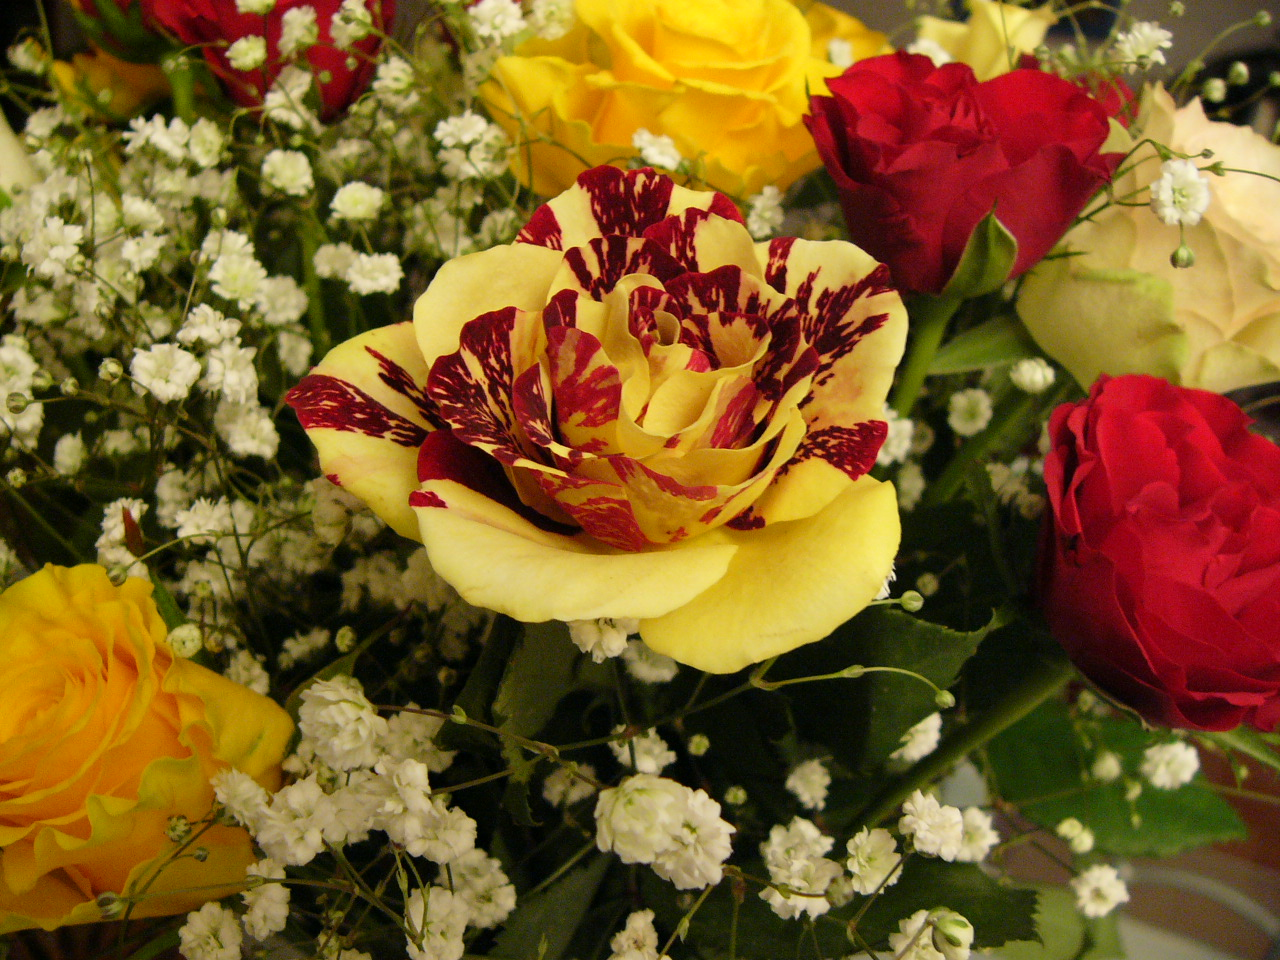 Gorgeous roses the meaning of rose colors 35 pics photo 25 by bayral izmirmasajfo